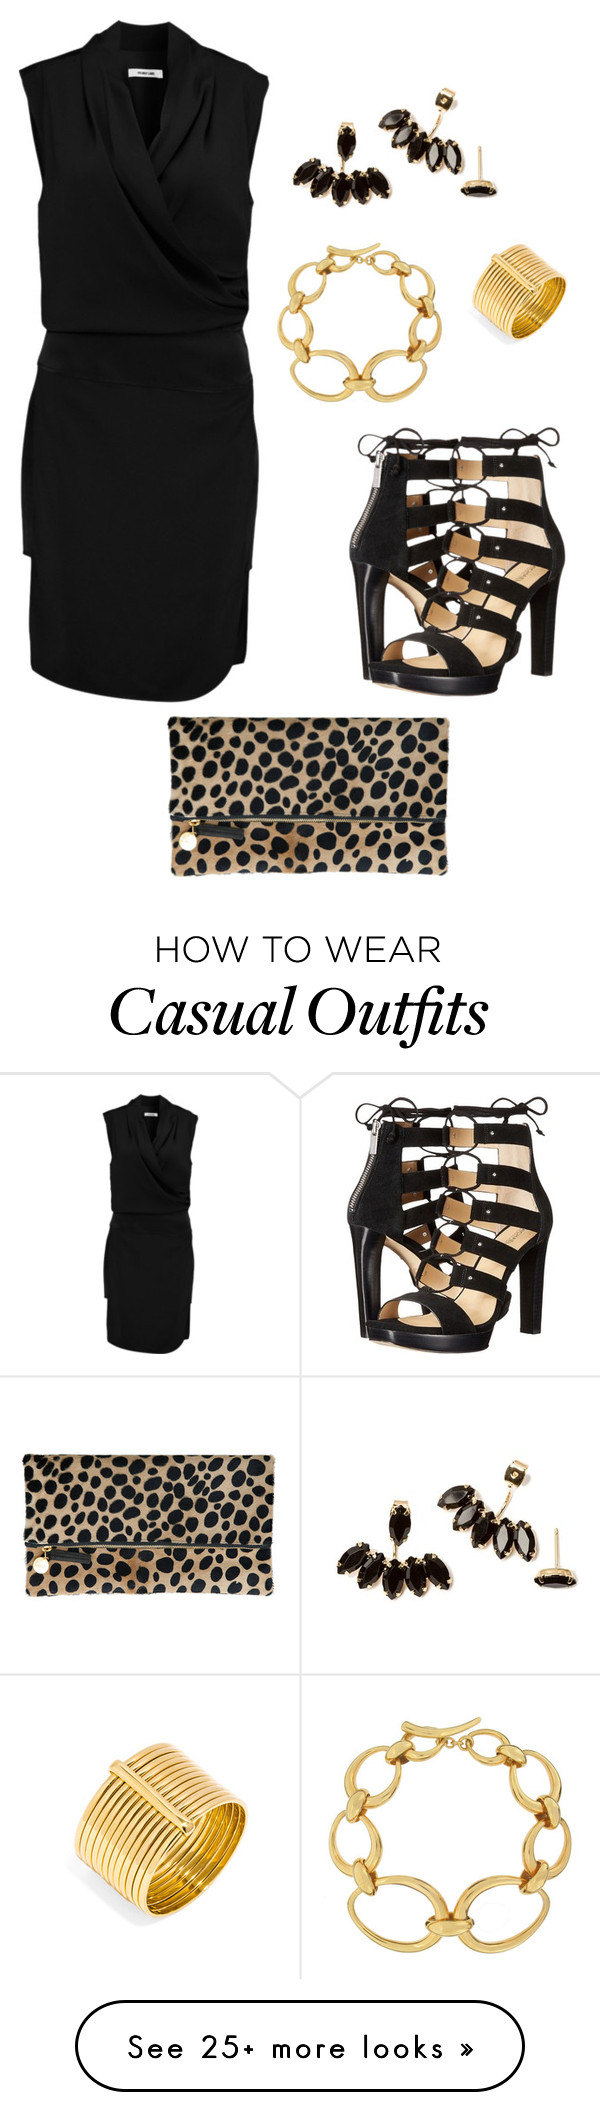 """Black dress - Casual"" by brittjade on Polyvore featuring Helmut Lang, MICHAEL Michael Kors, Dinny Hall, Clare V. and BaubleBar"